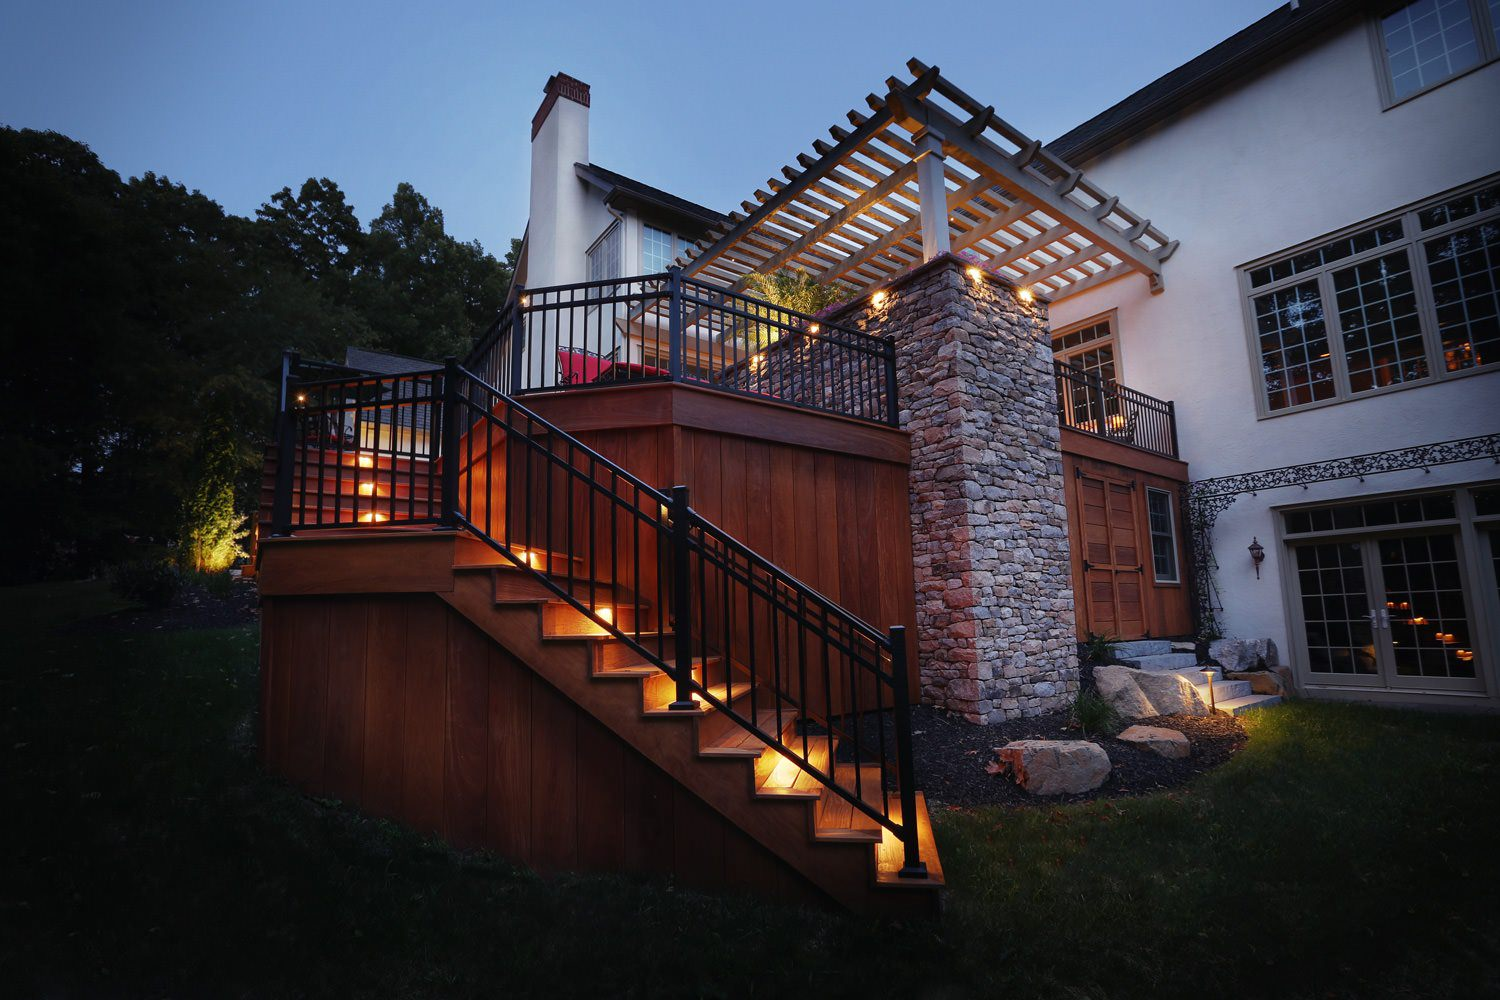 The combination of stone, wood, metal and warm LED lighting makes this space come alive with timeless beauty.